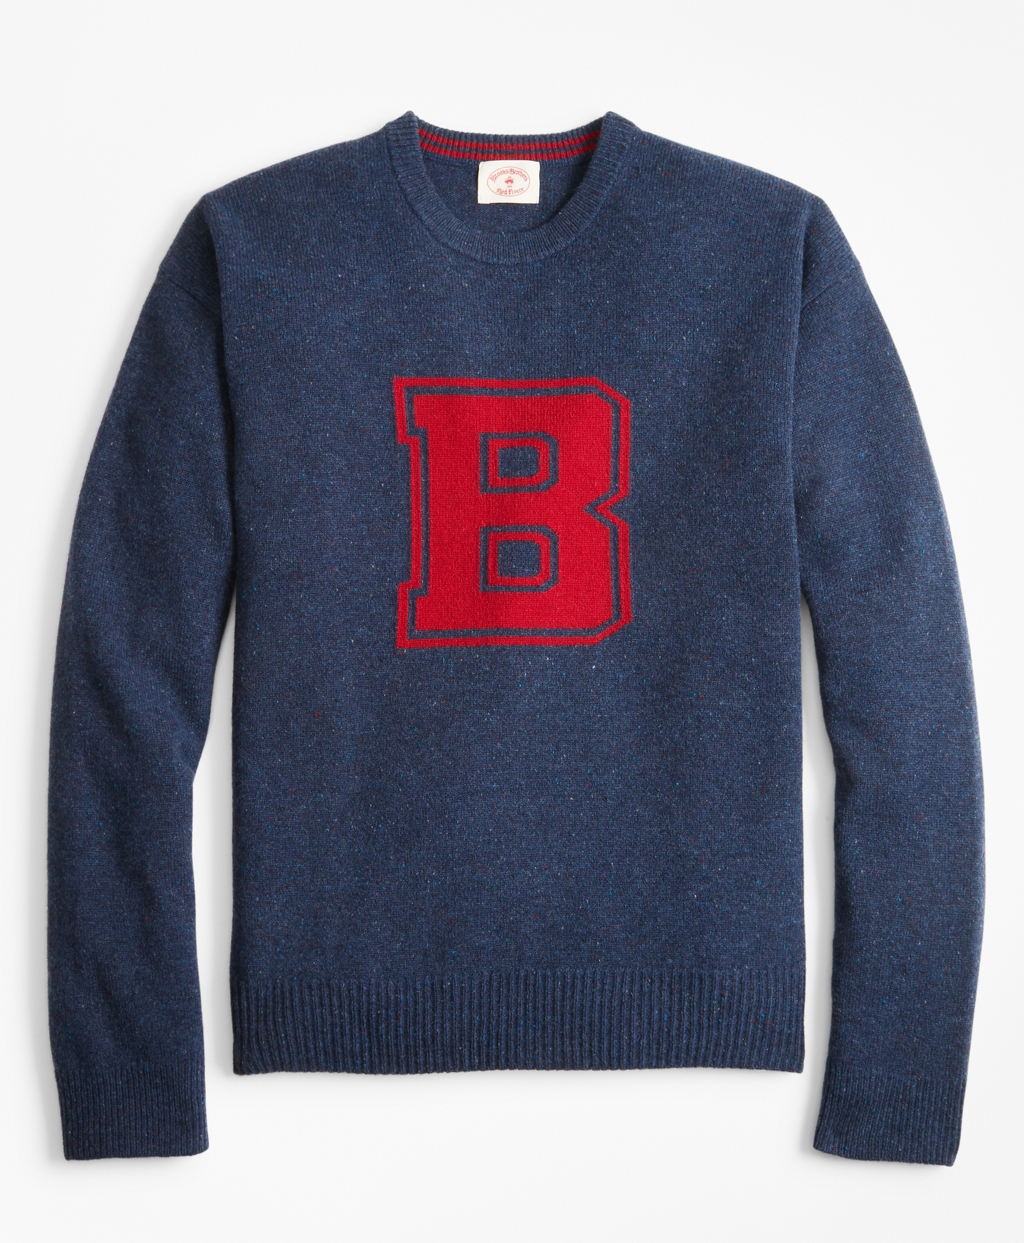 60s 70s Men's Jackets & Sweaters Brooks Brothers Mens Donegal Wool Crewneck Letter Sweater $89.50 AT vintagedancer.com